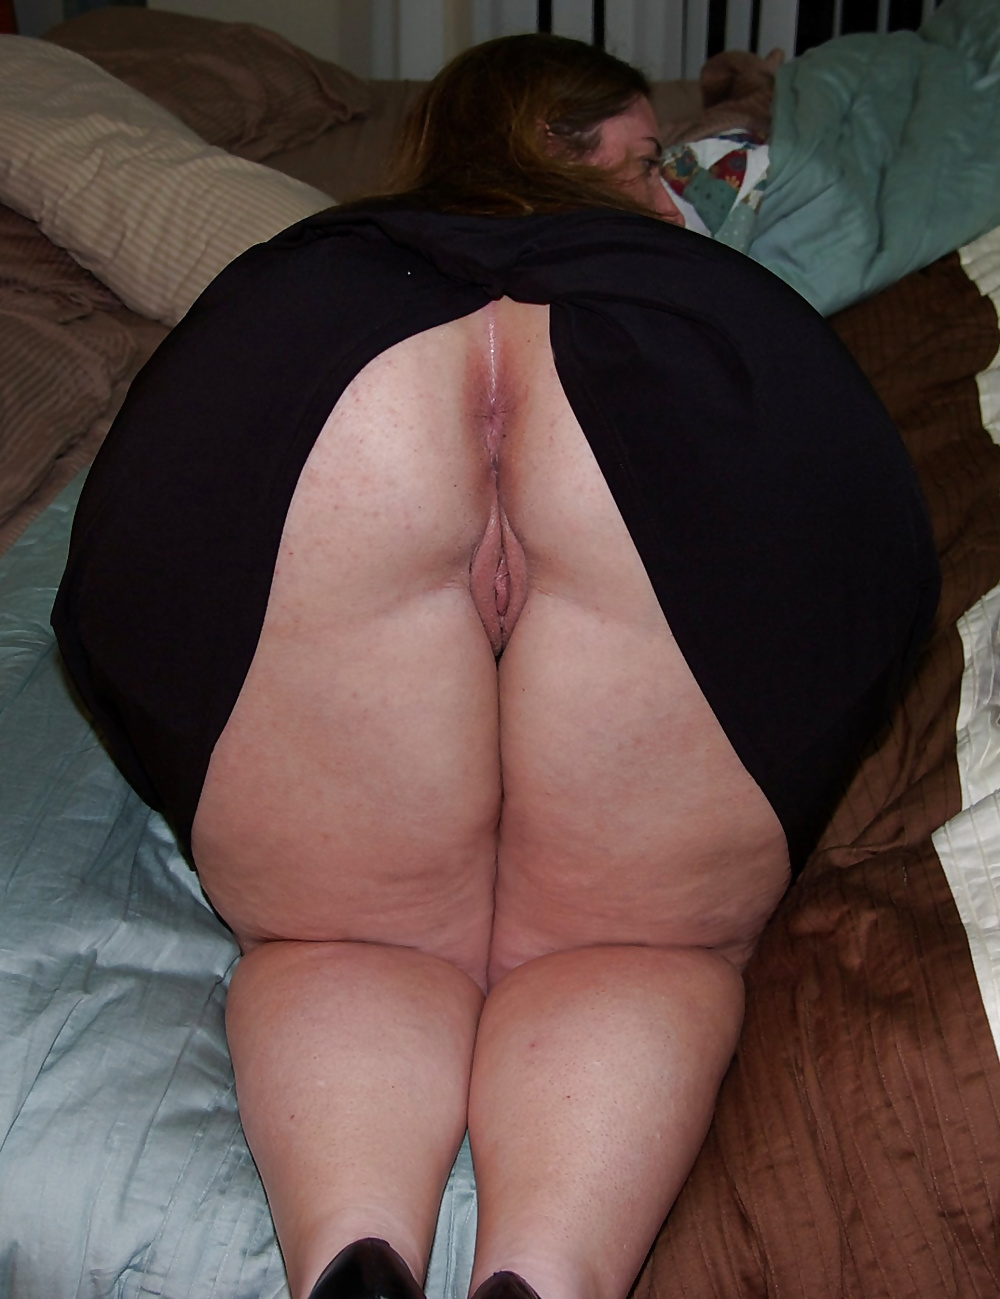 Excellent interlocutors bbw fat ass huge pussy free opinion you